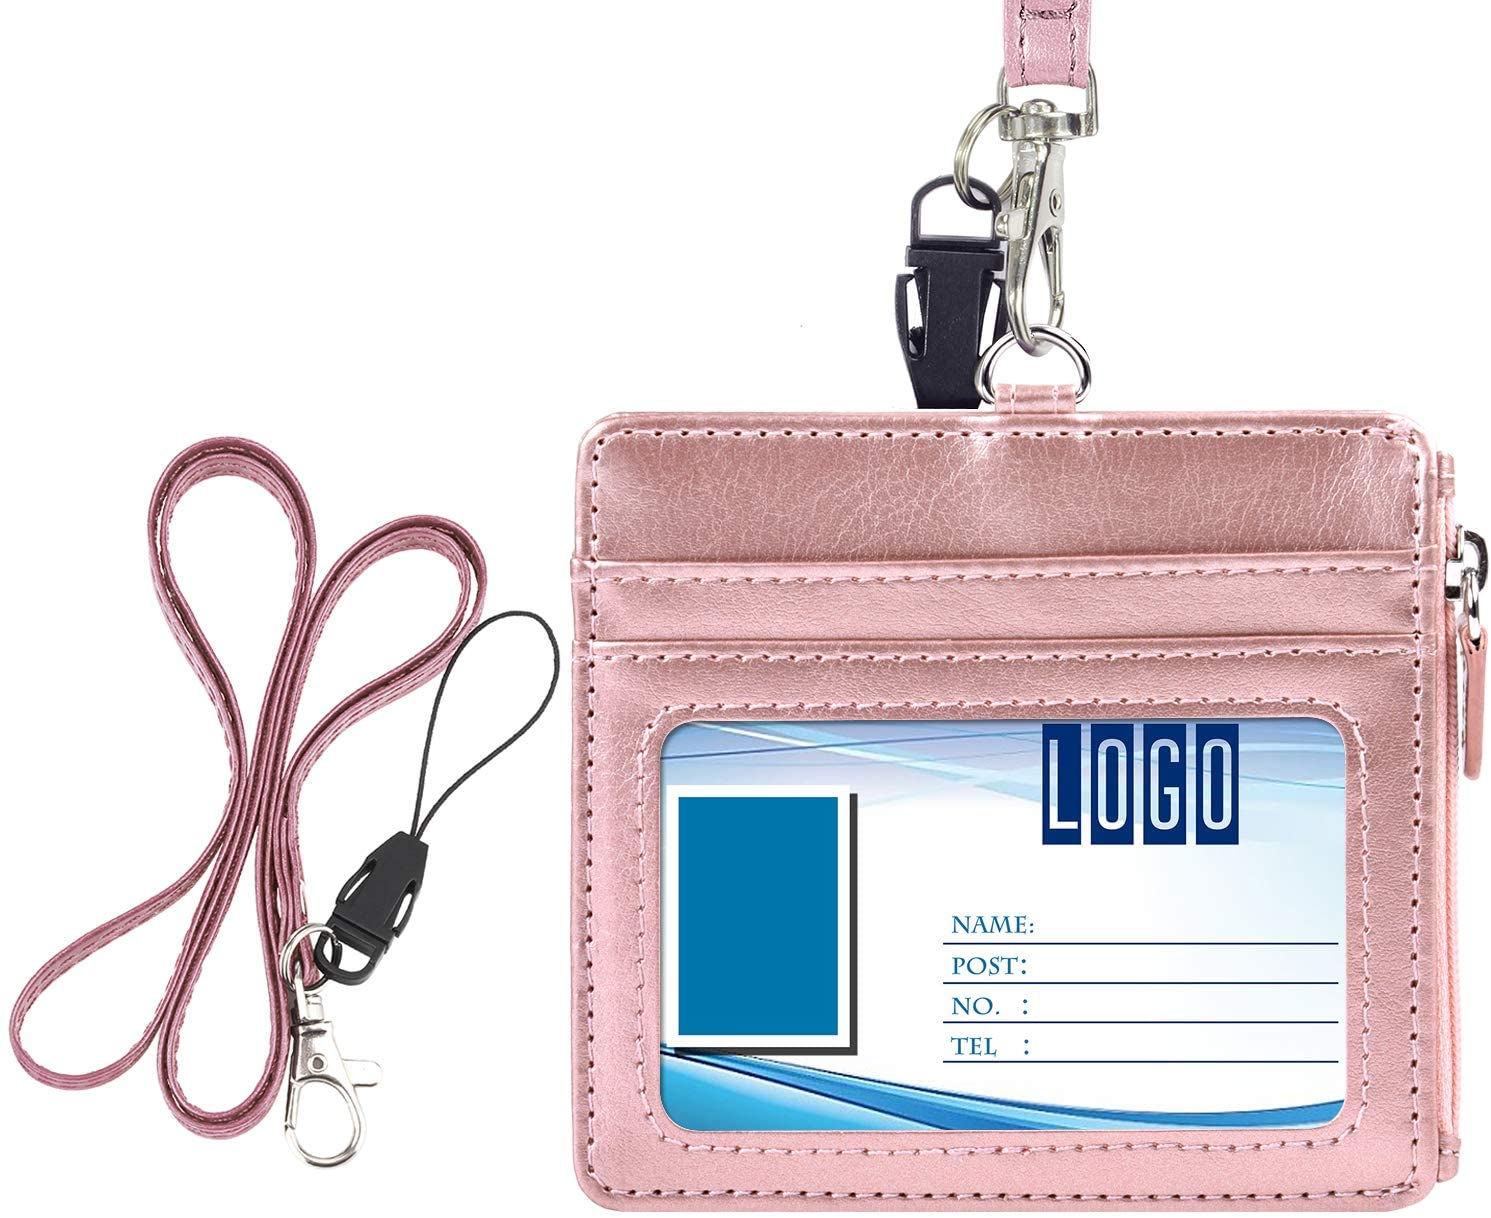 Badge Holder with Zip, Wisdompro 2-Sided PU Leather ID Badge Holder with 1 ID Window, 4 Card Slots, 1 Side Zipper Pocket and 1 Piece 20 Inch Leather Neck Lanyard Strap - Rose Gold (Horizontal)